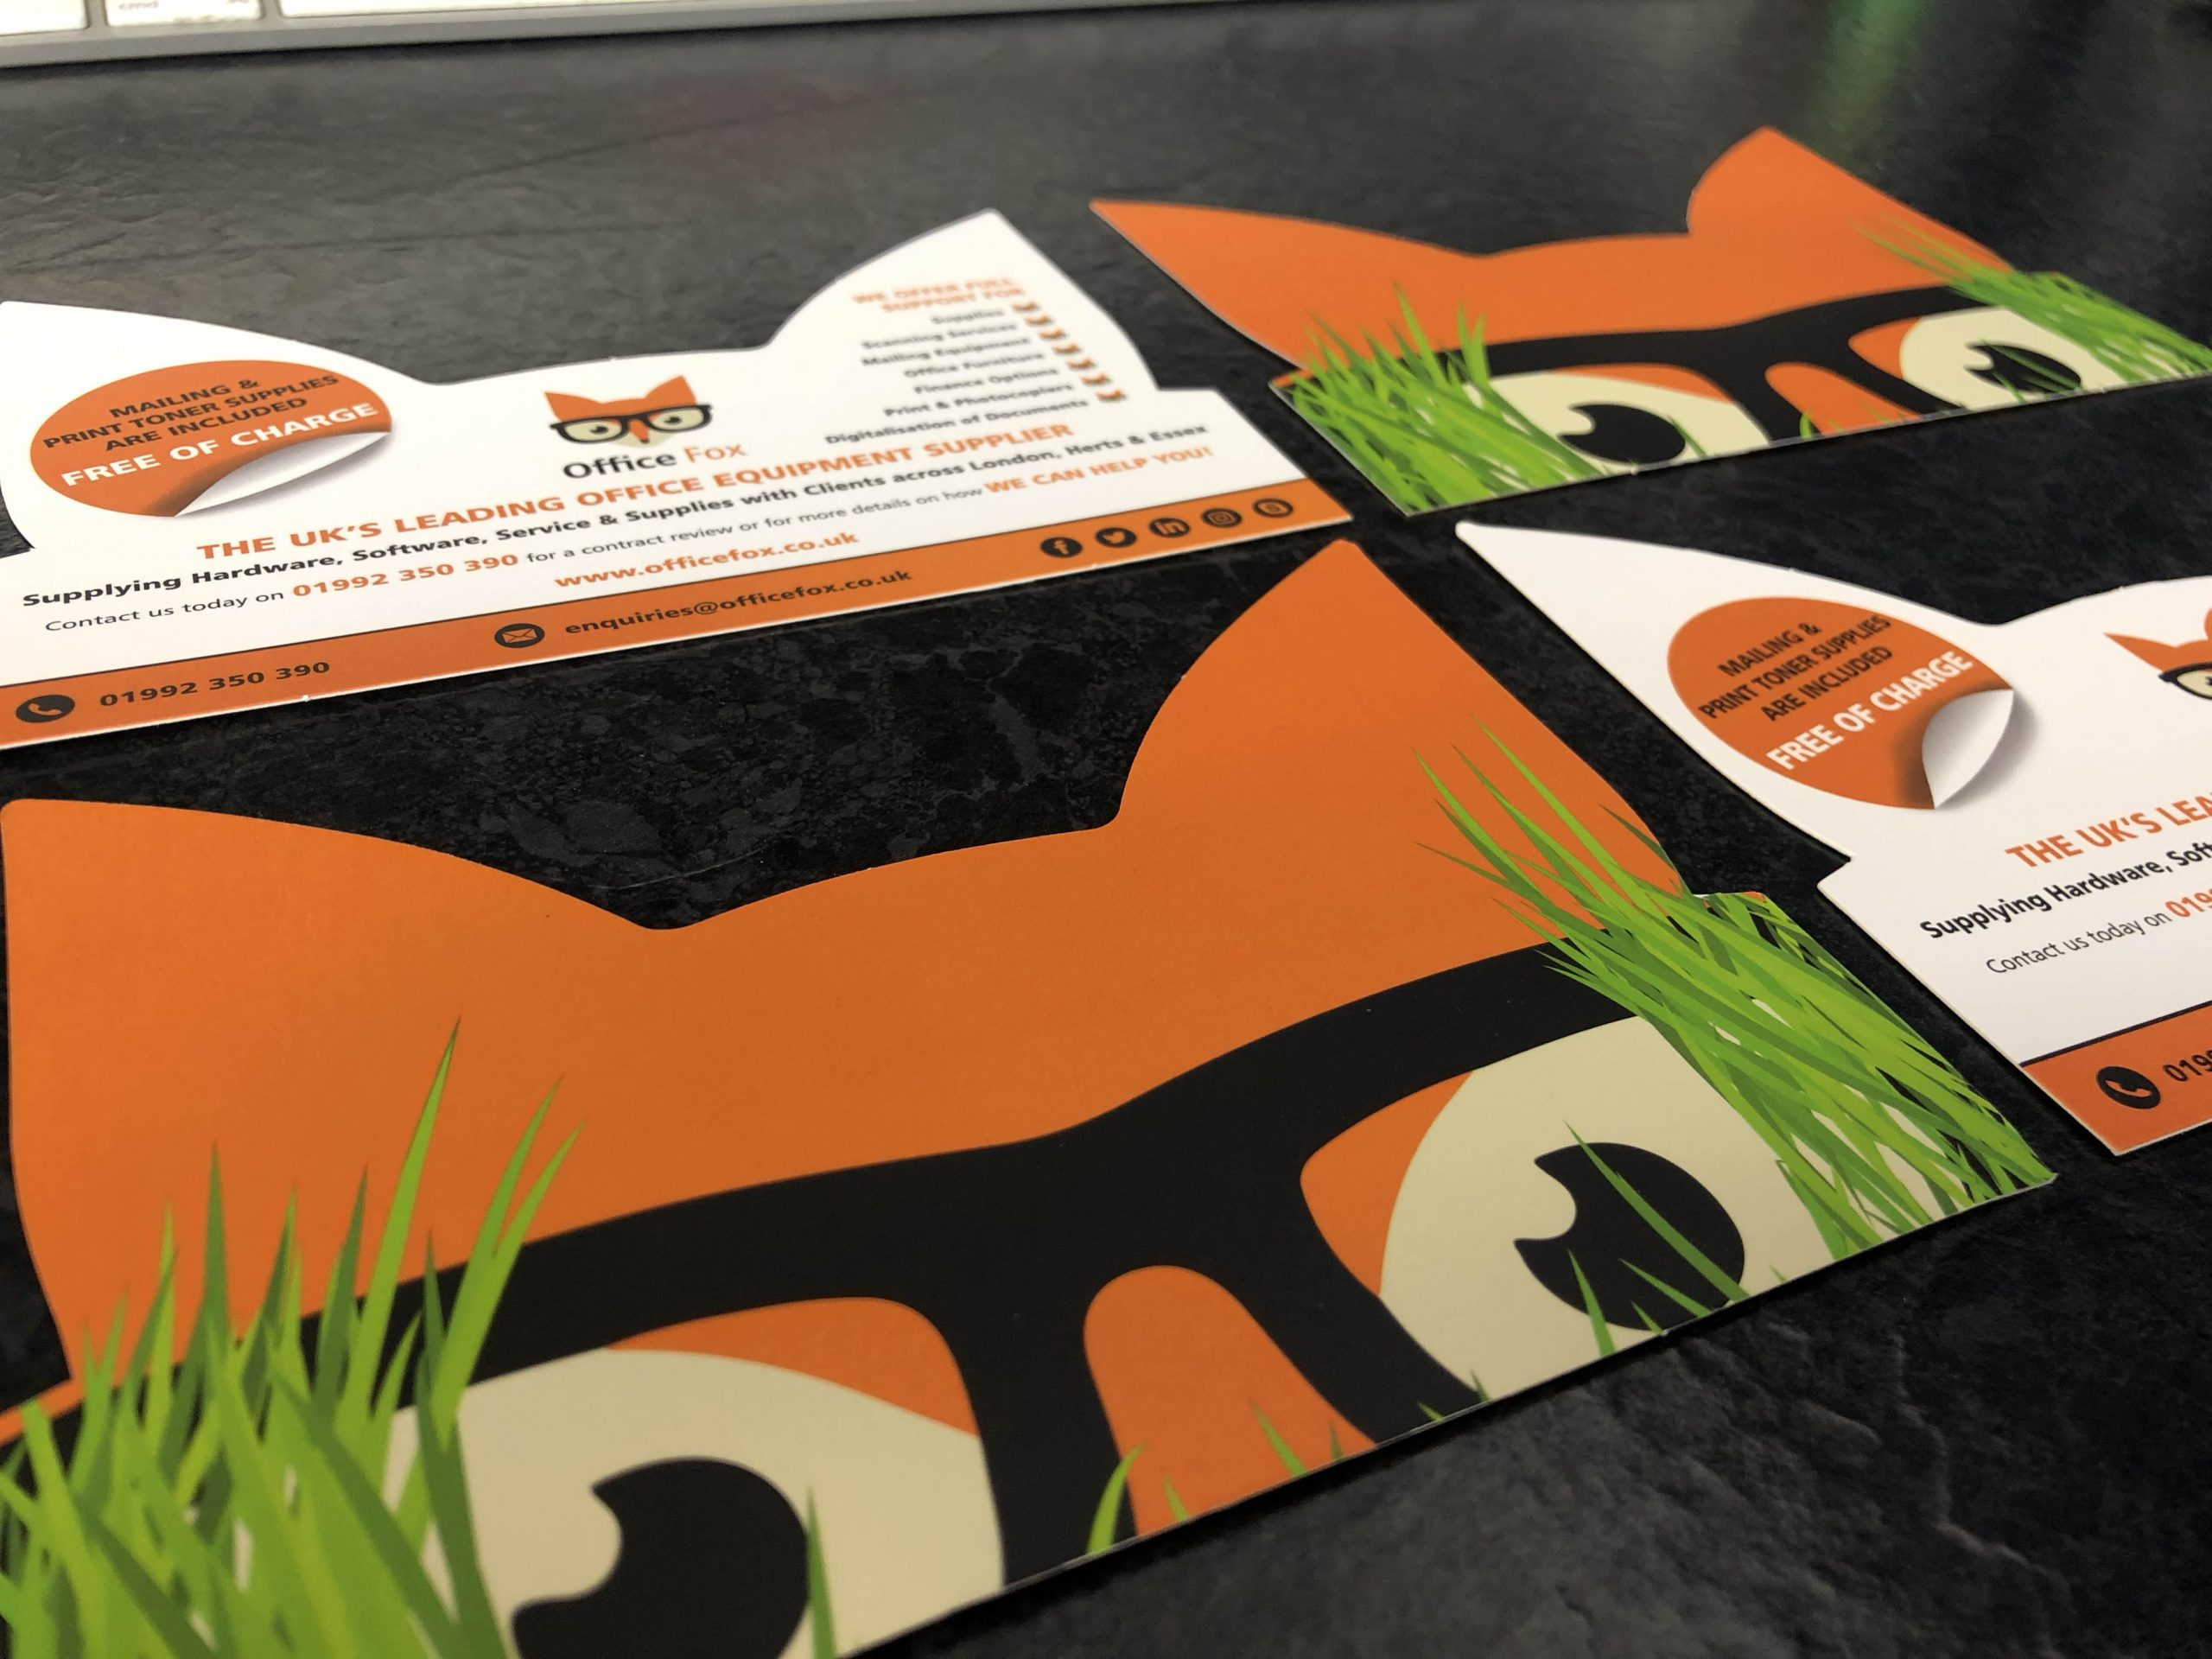 Office-Fox-A6-Shaped-Leaflet